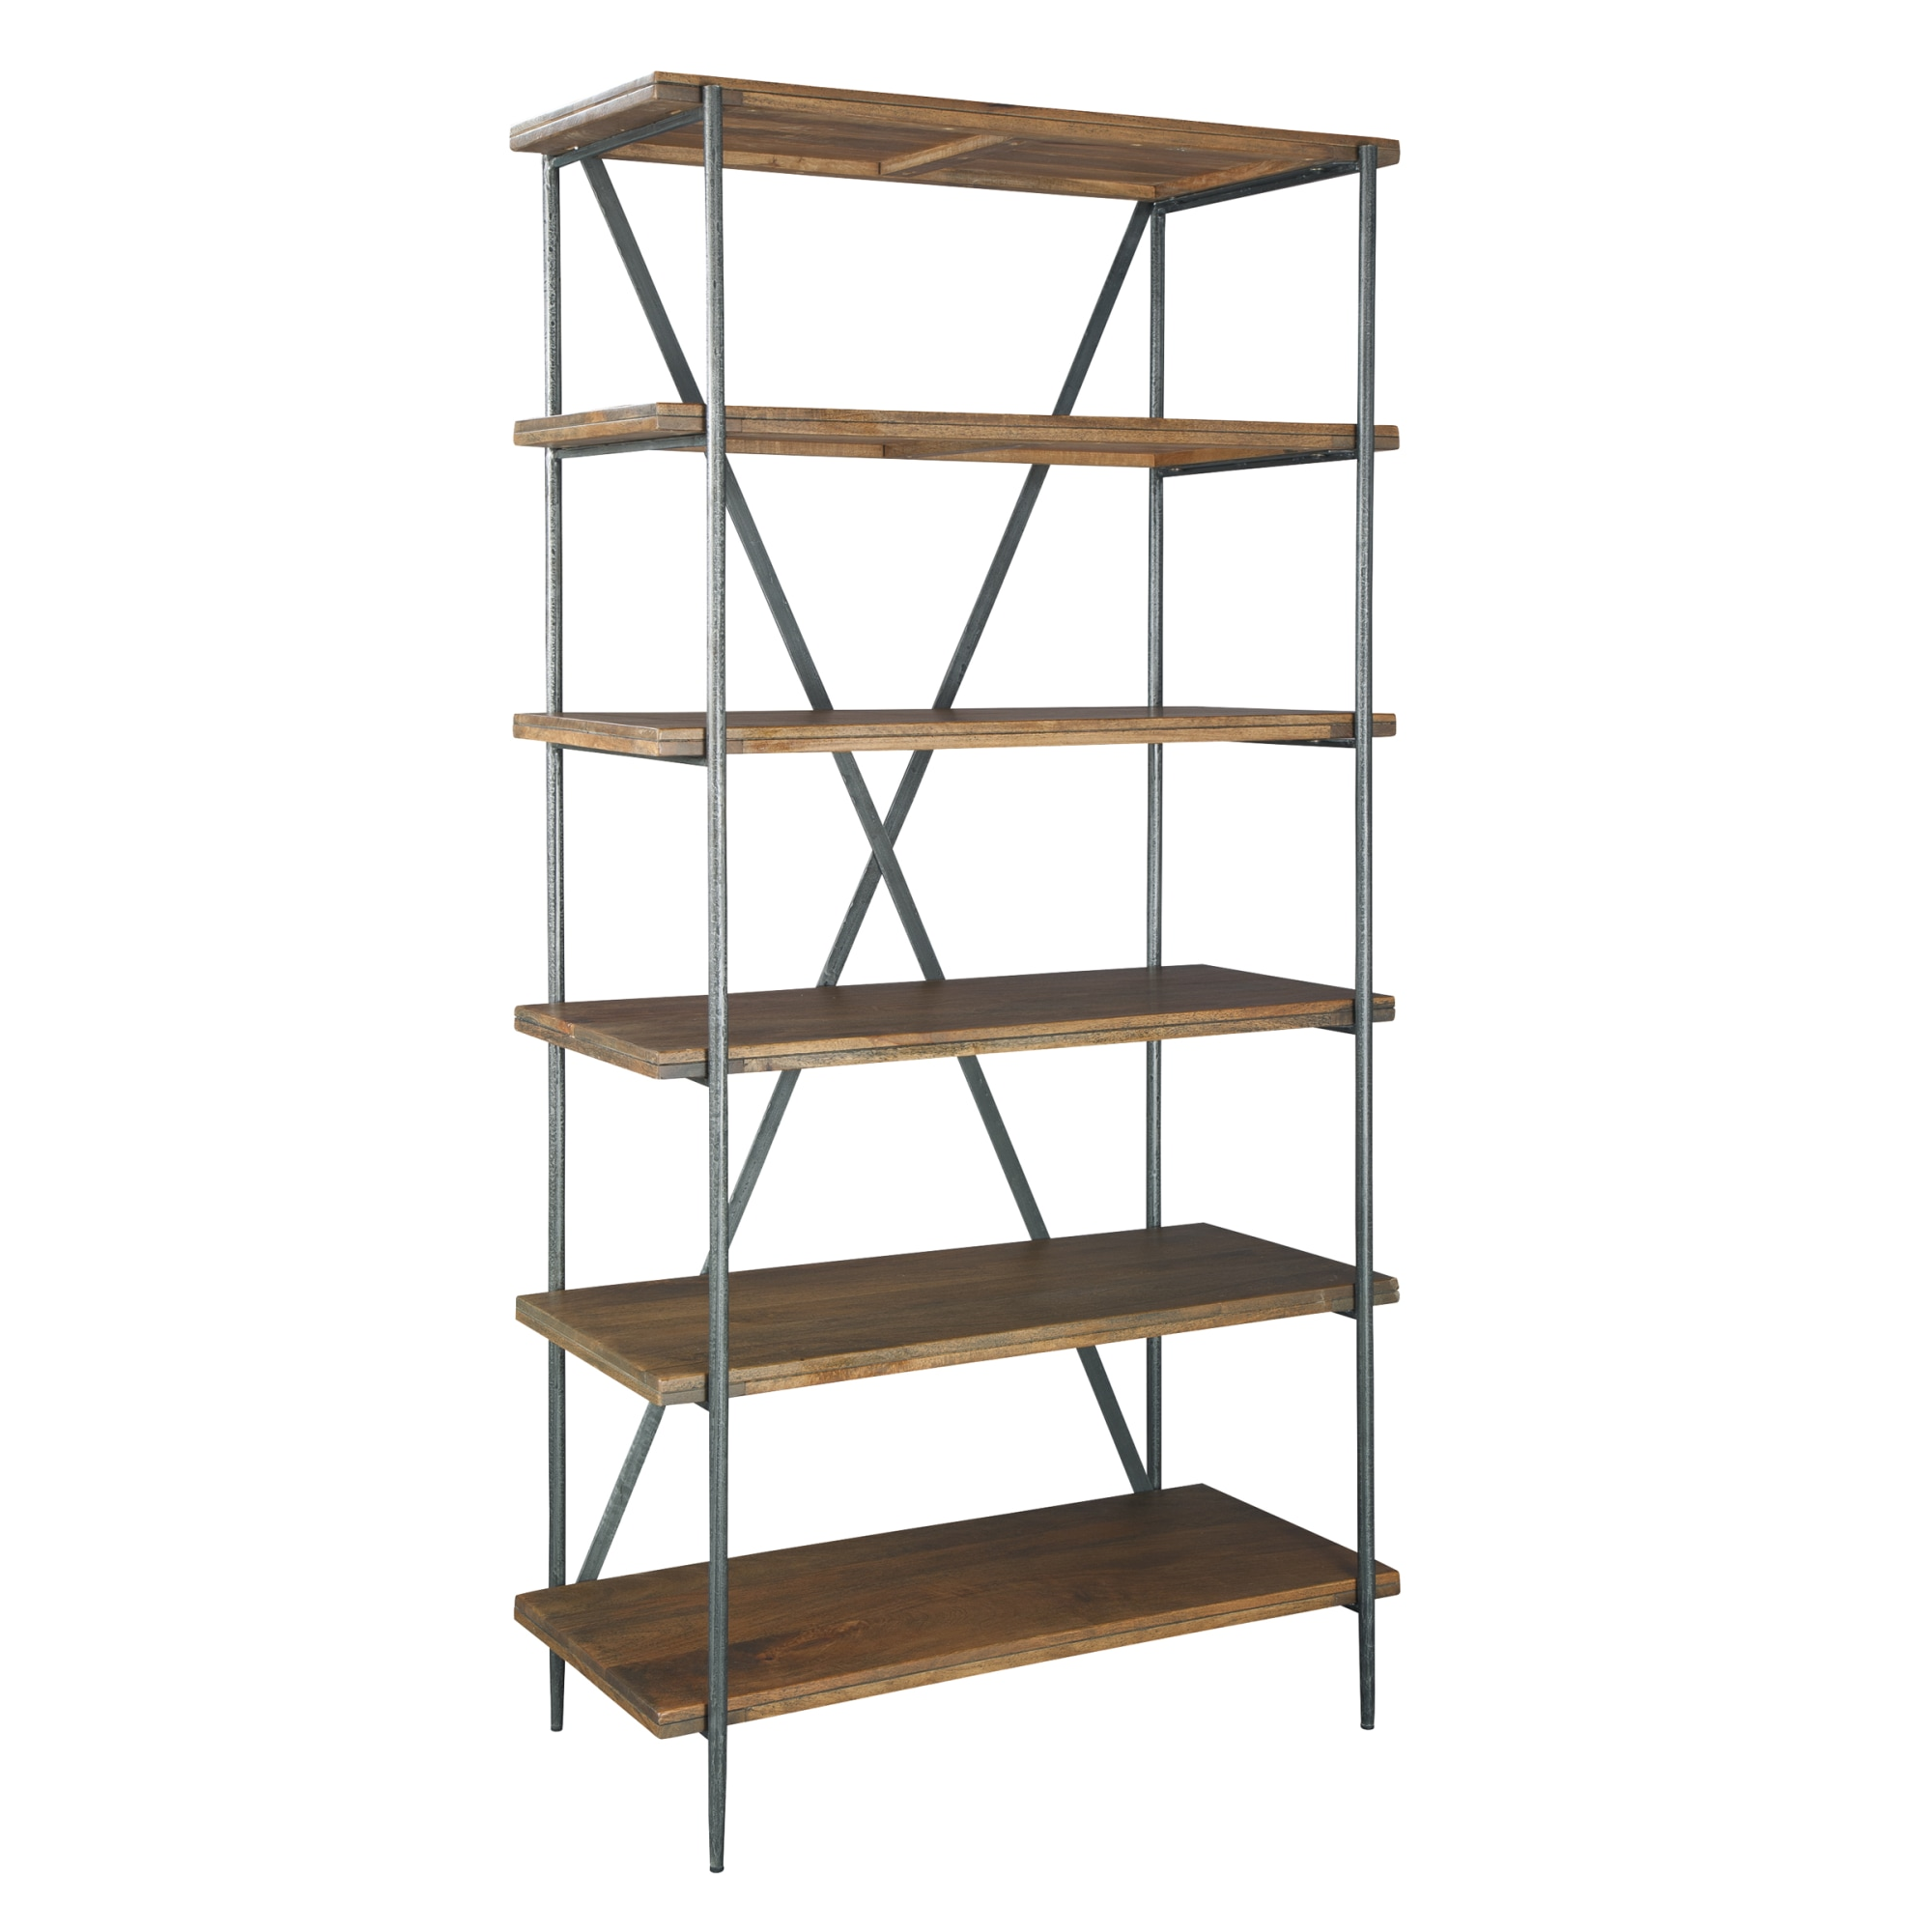 Image for 2-3711 Office@Home Bedford Open Shelving from Hekman Official Website